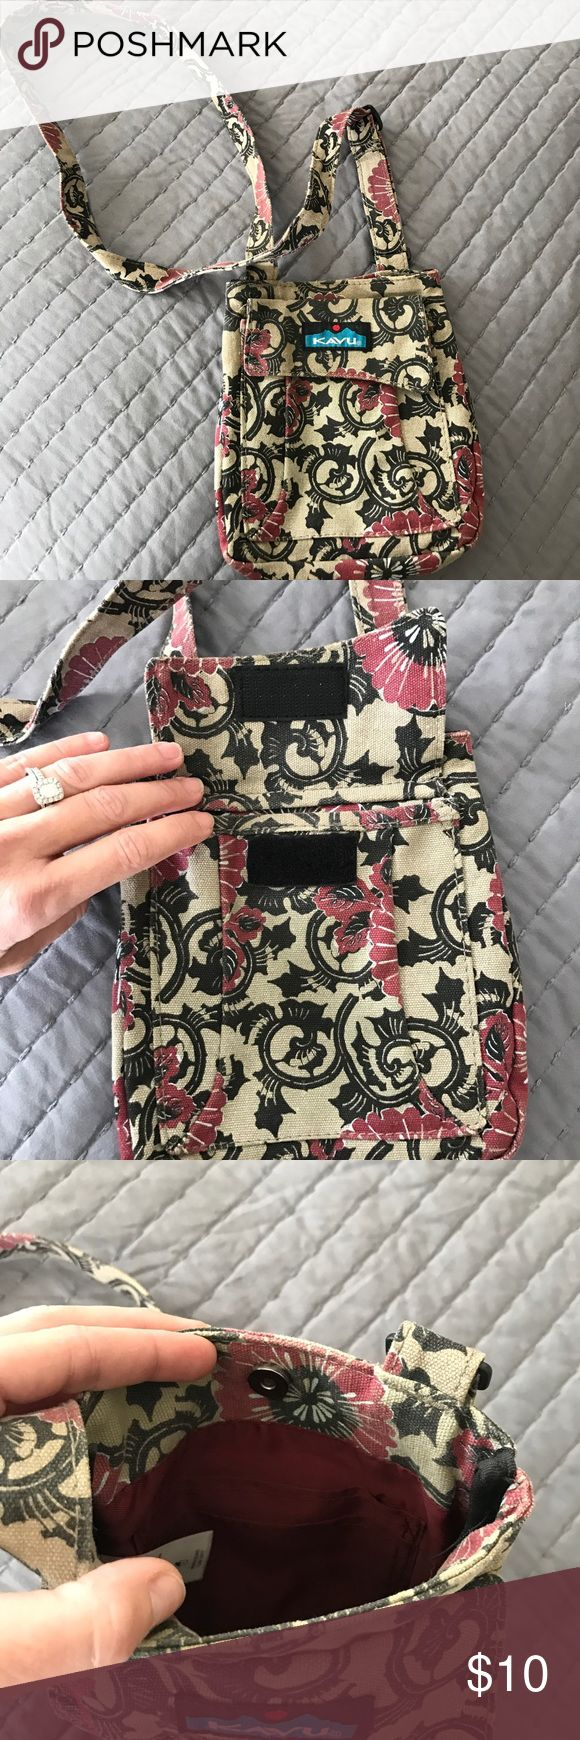 """KAVU Cross body bag Great for festivals!  Cross body bag with adjustable shoulder strap, main compartment with snap closure Front patch pocket, back flat pocket, internal organizational pockets Dimensions: 7"""" x 8"""" Fabric: 12oz cotton canvas KAVU Bags Crossbody Bags"""